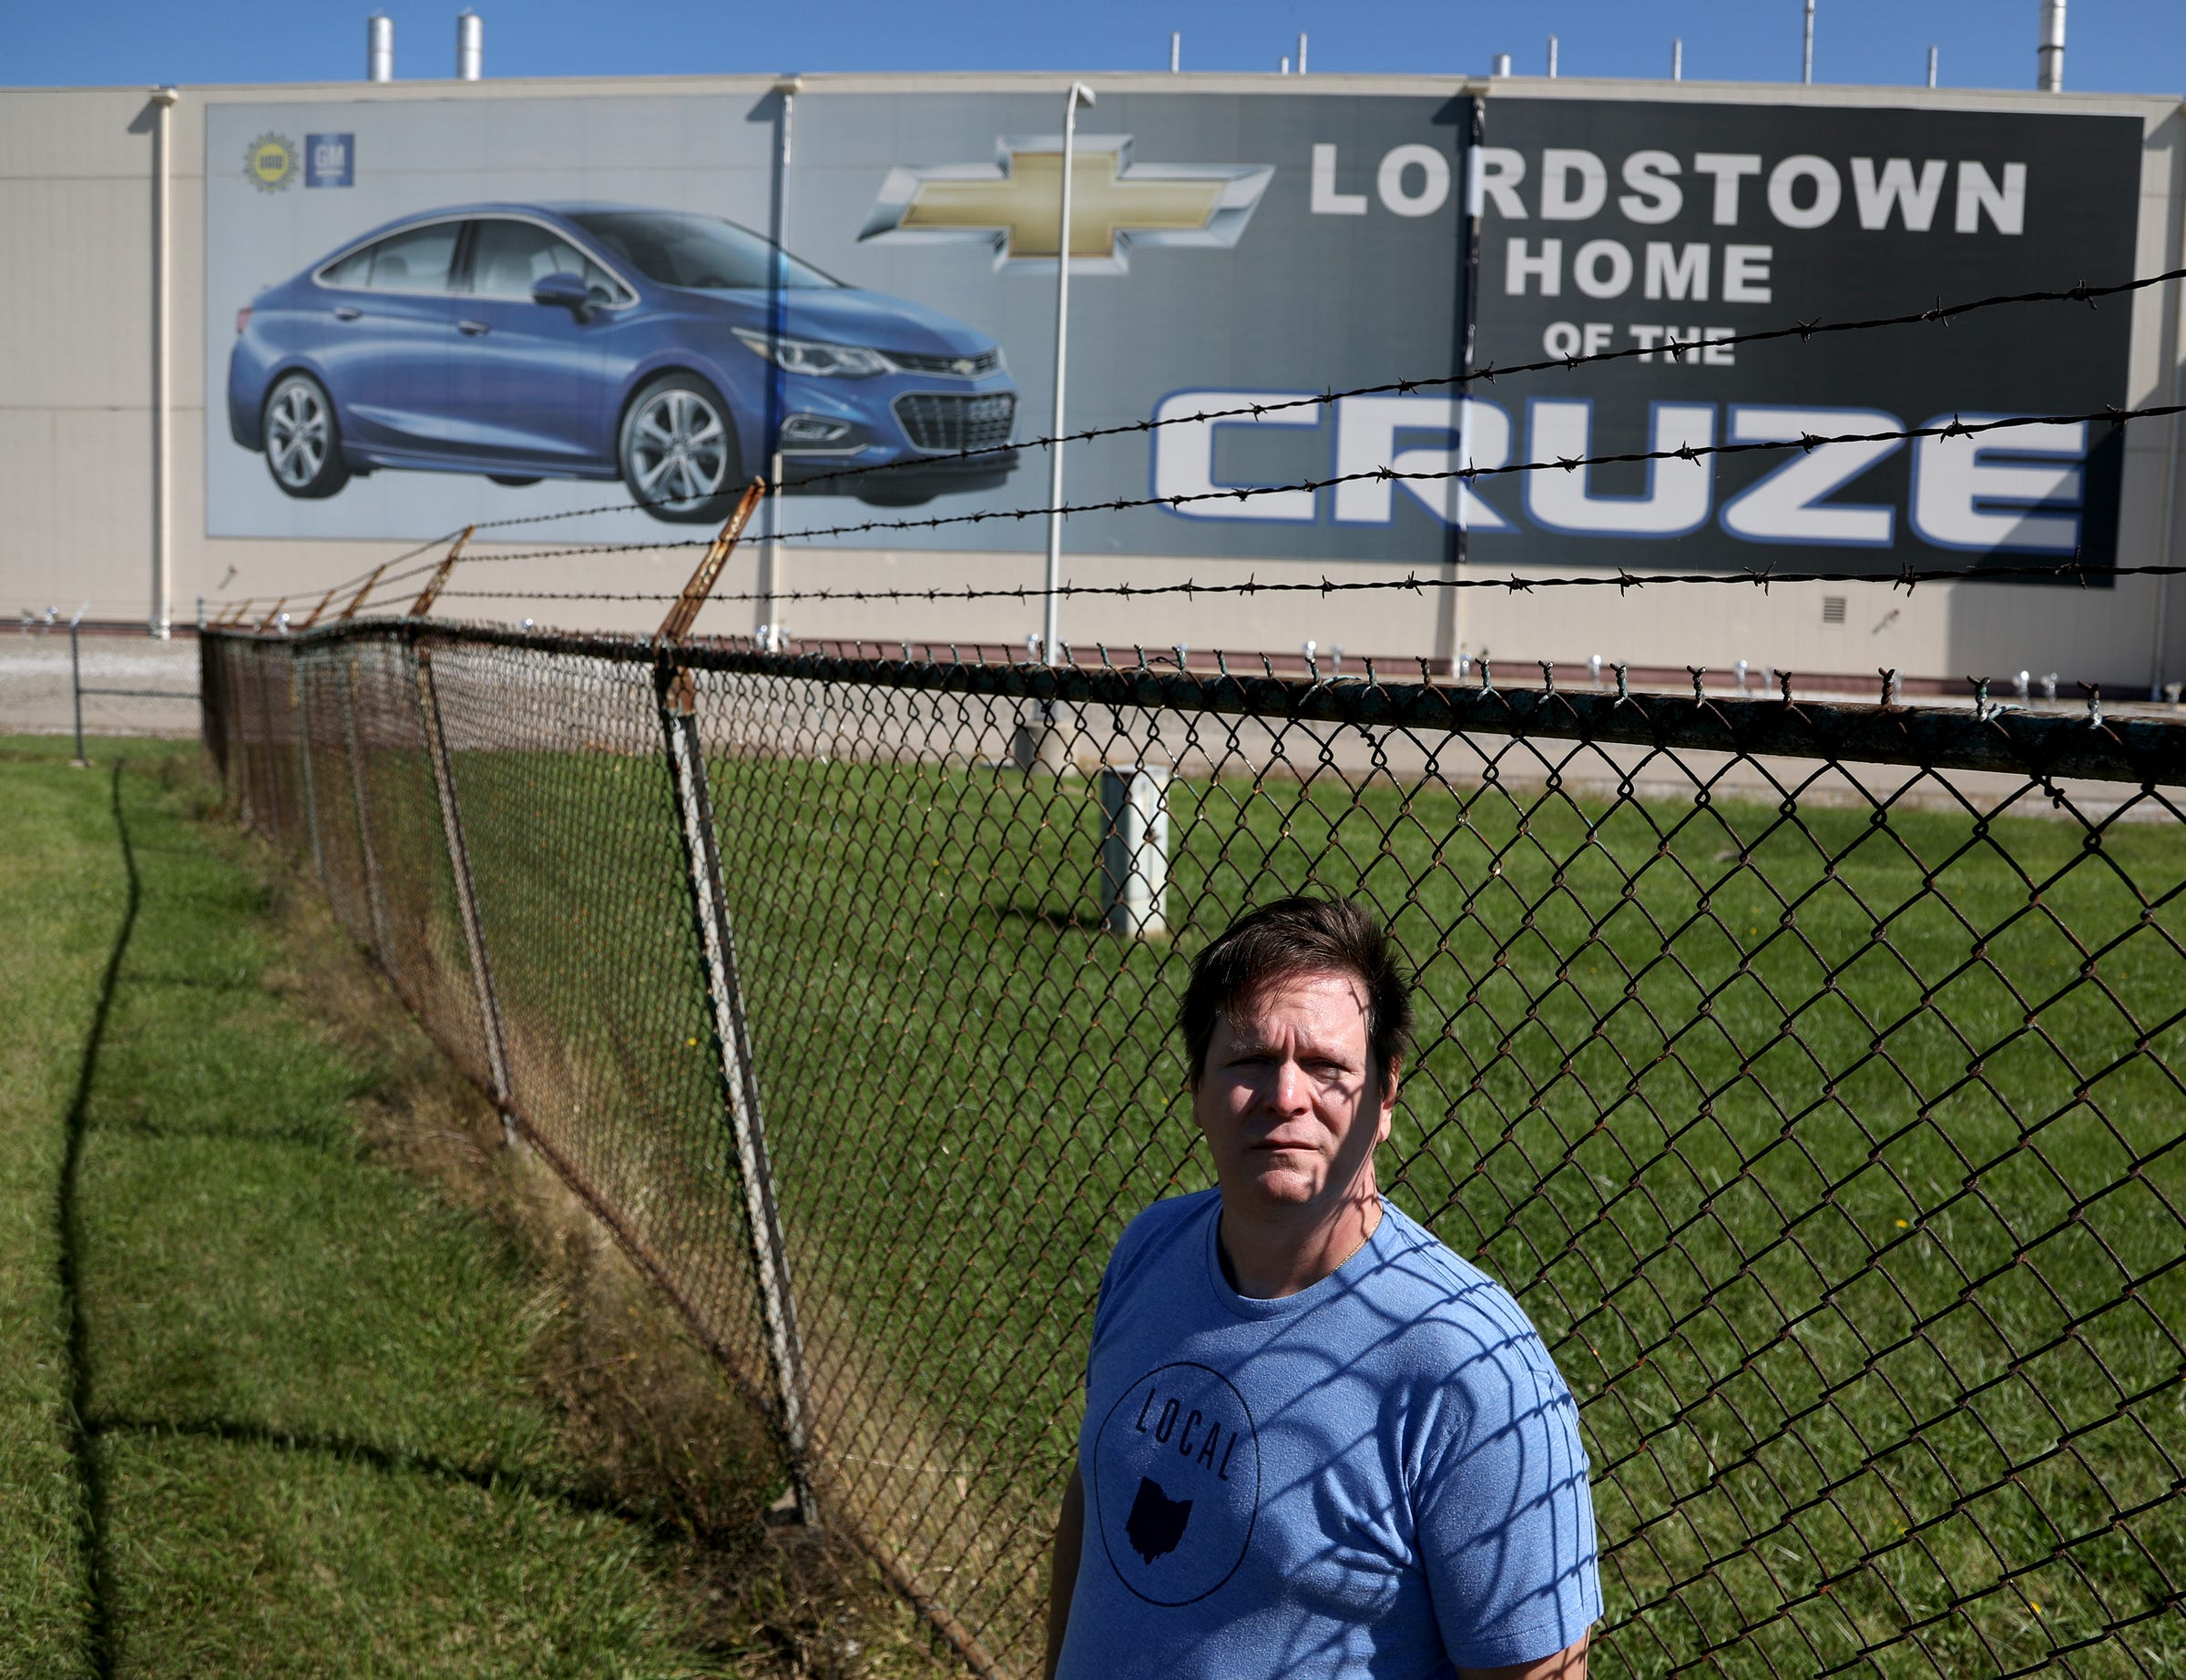 Mike Yakim at the empty GM Lordstown Assembly plant in Lordstown, Ohio, Wednesday, Sept. 18, 2019. Yakim worked at this plant where the Chevy Cruze was made until the plant was closed March of this year. He was transferred to the GM Lansing Delta Township in September but with the national wide strike has come back to Lordstown to picket in front of the empty plant in Lordstown with others.